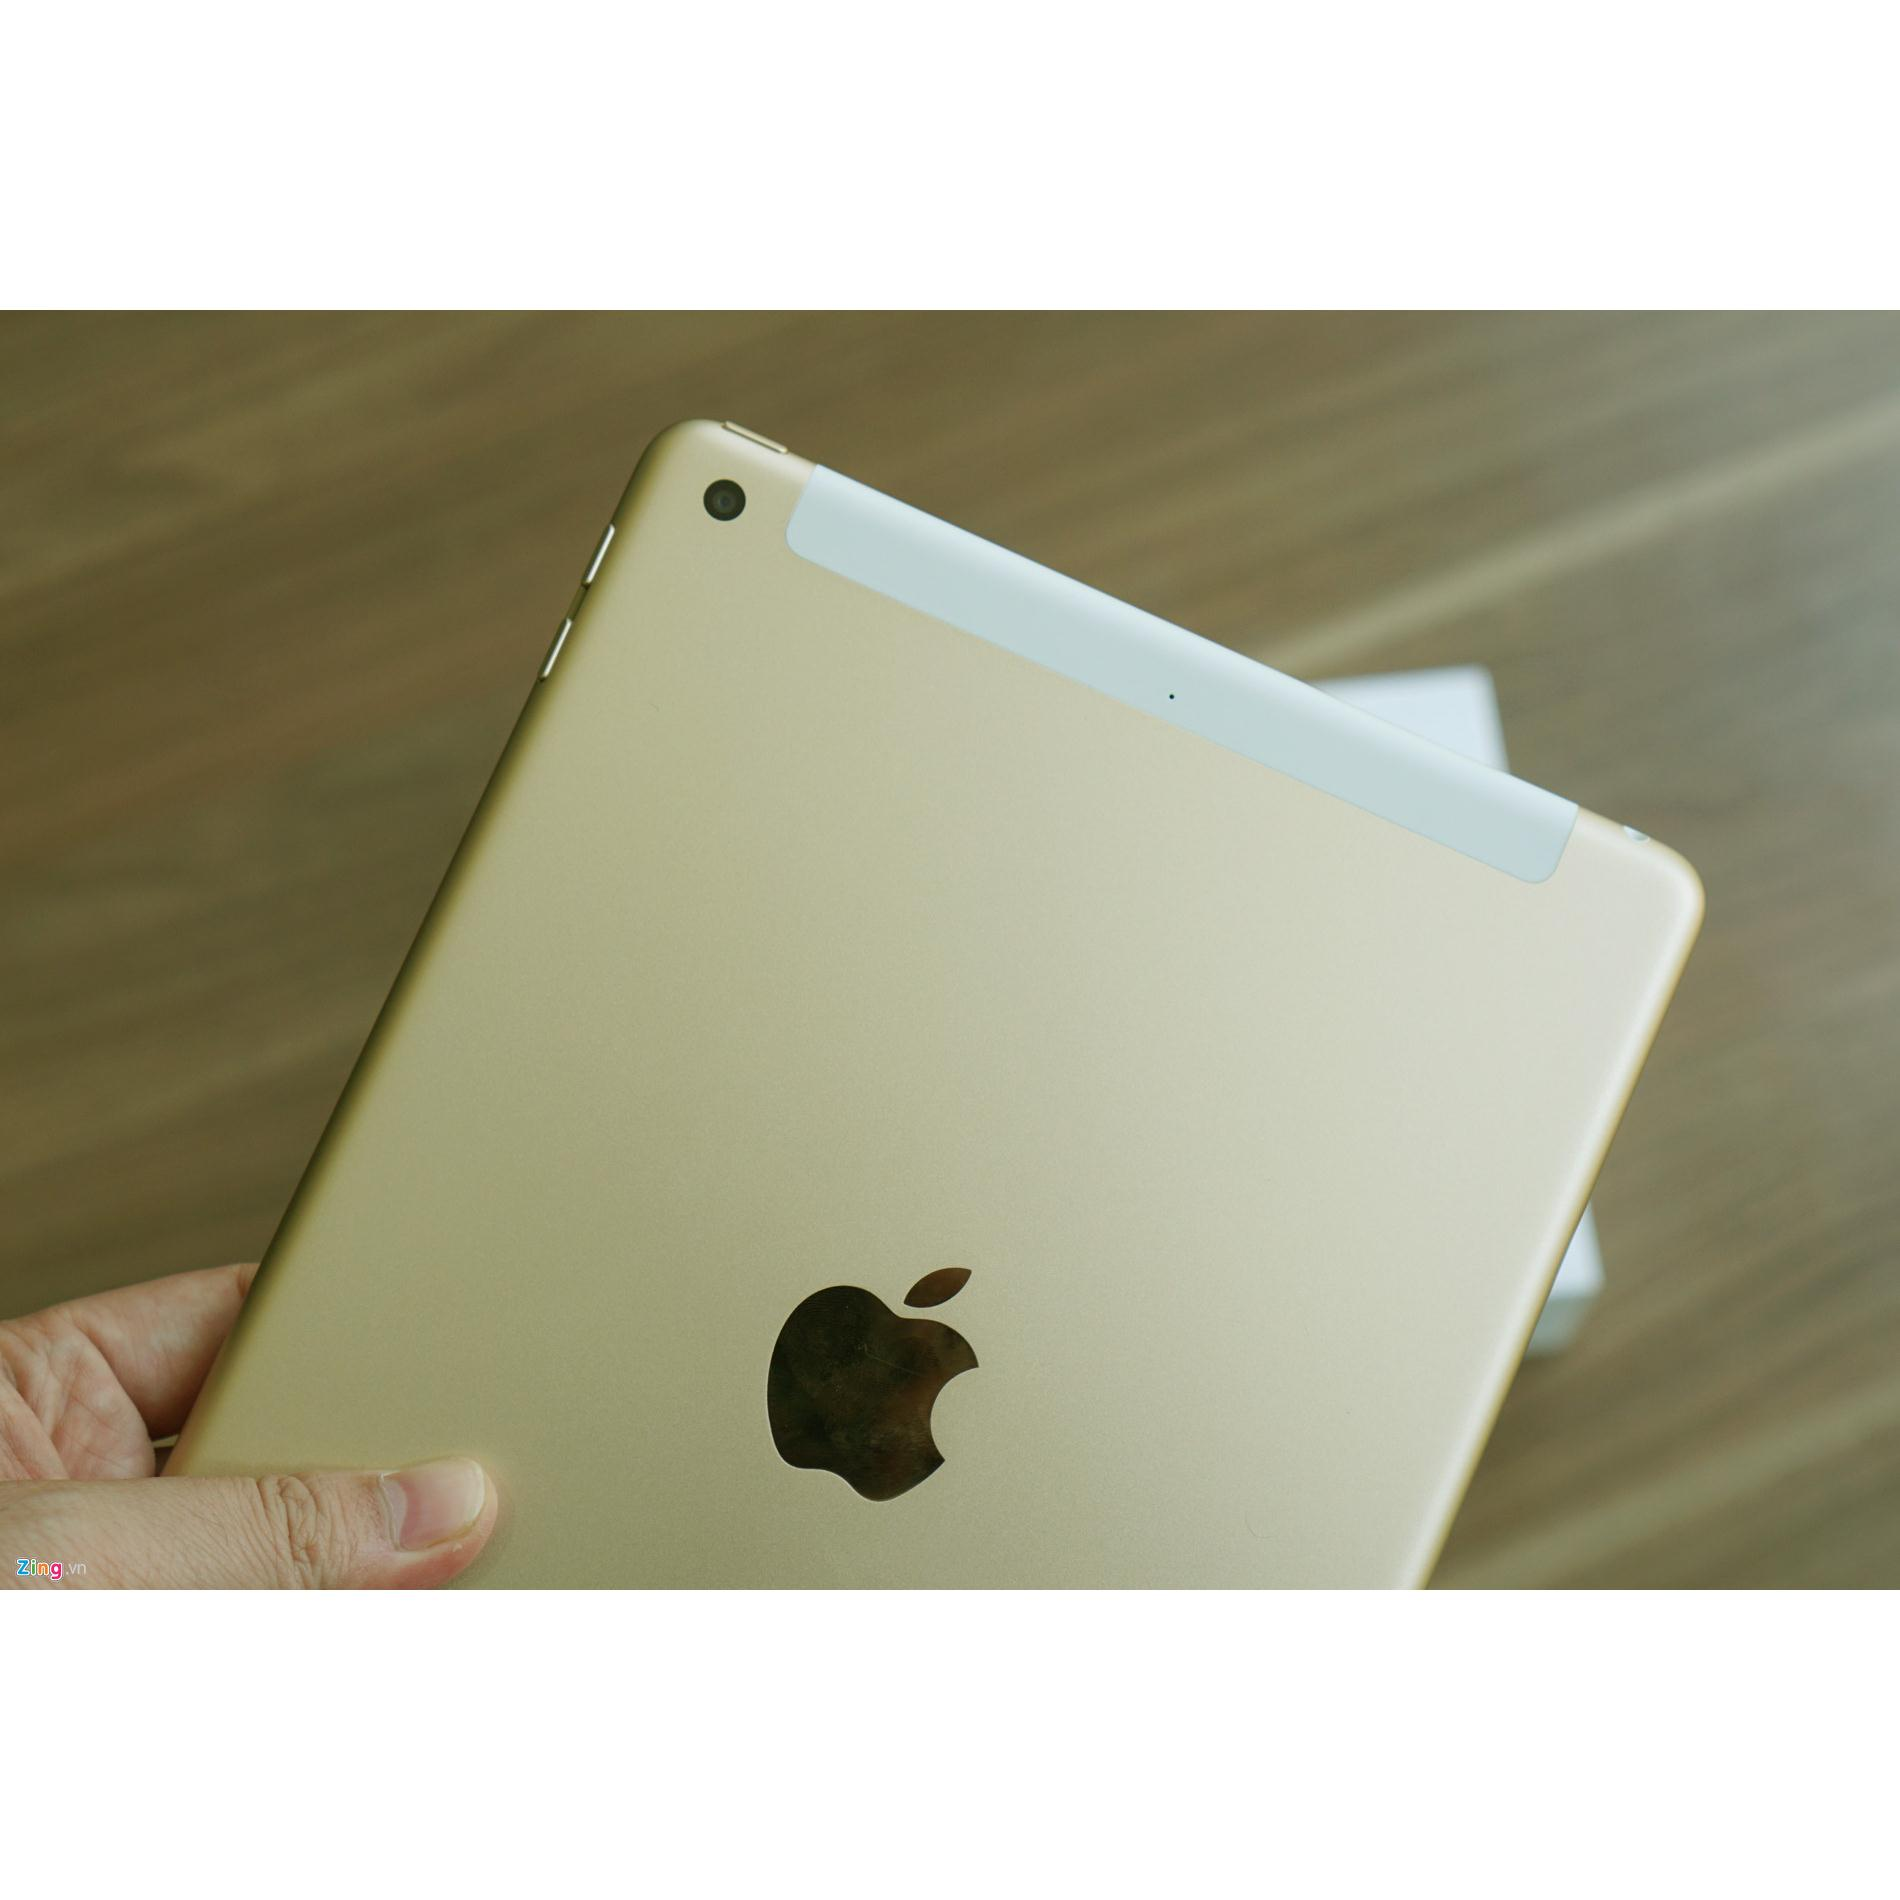 ipad-2017-32g-4g-wifi-siver-or-gold-99